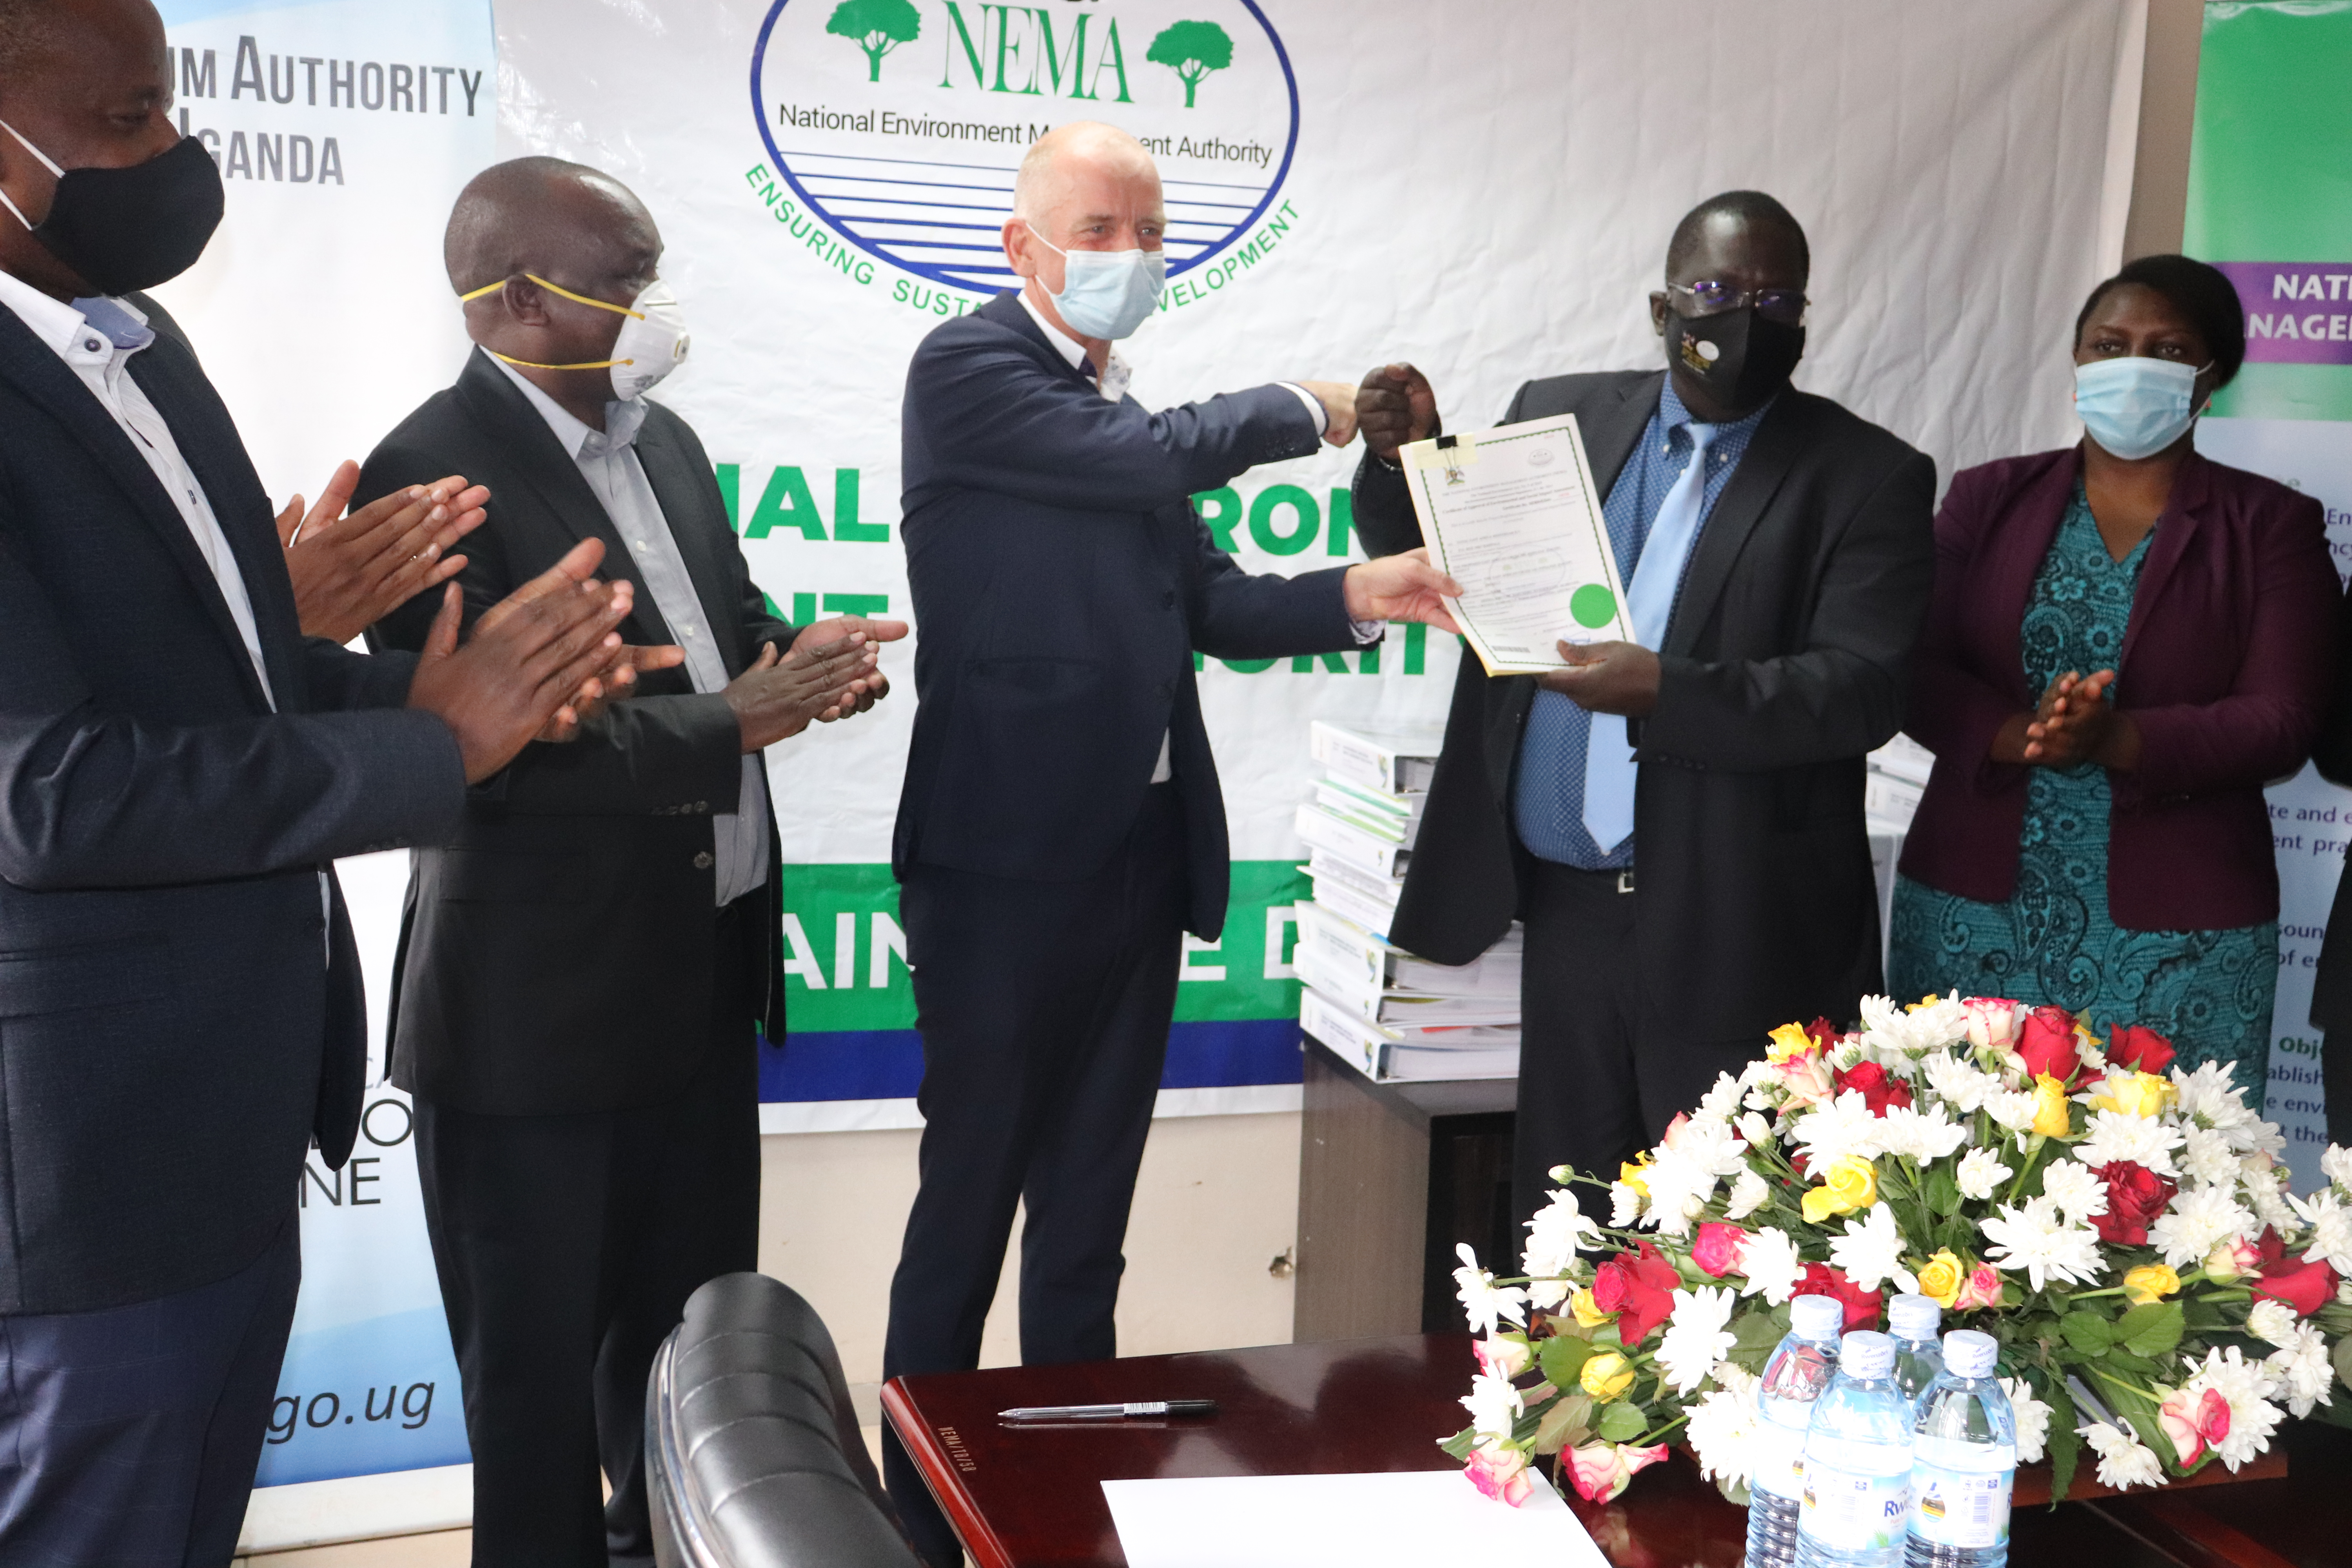 Martin-TiffenThird-Left-General-Manager-East-African-Crude-Oil-Pipeline-Project-EACOP-receives-ESIA-certificate-from-Dr.-Tom-Okurut-Second-Right-ED-NEMA